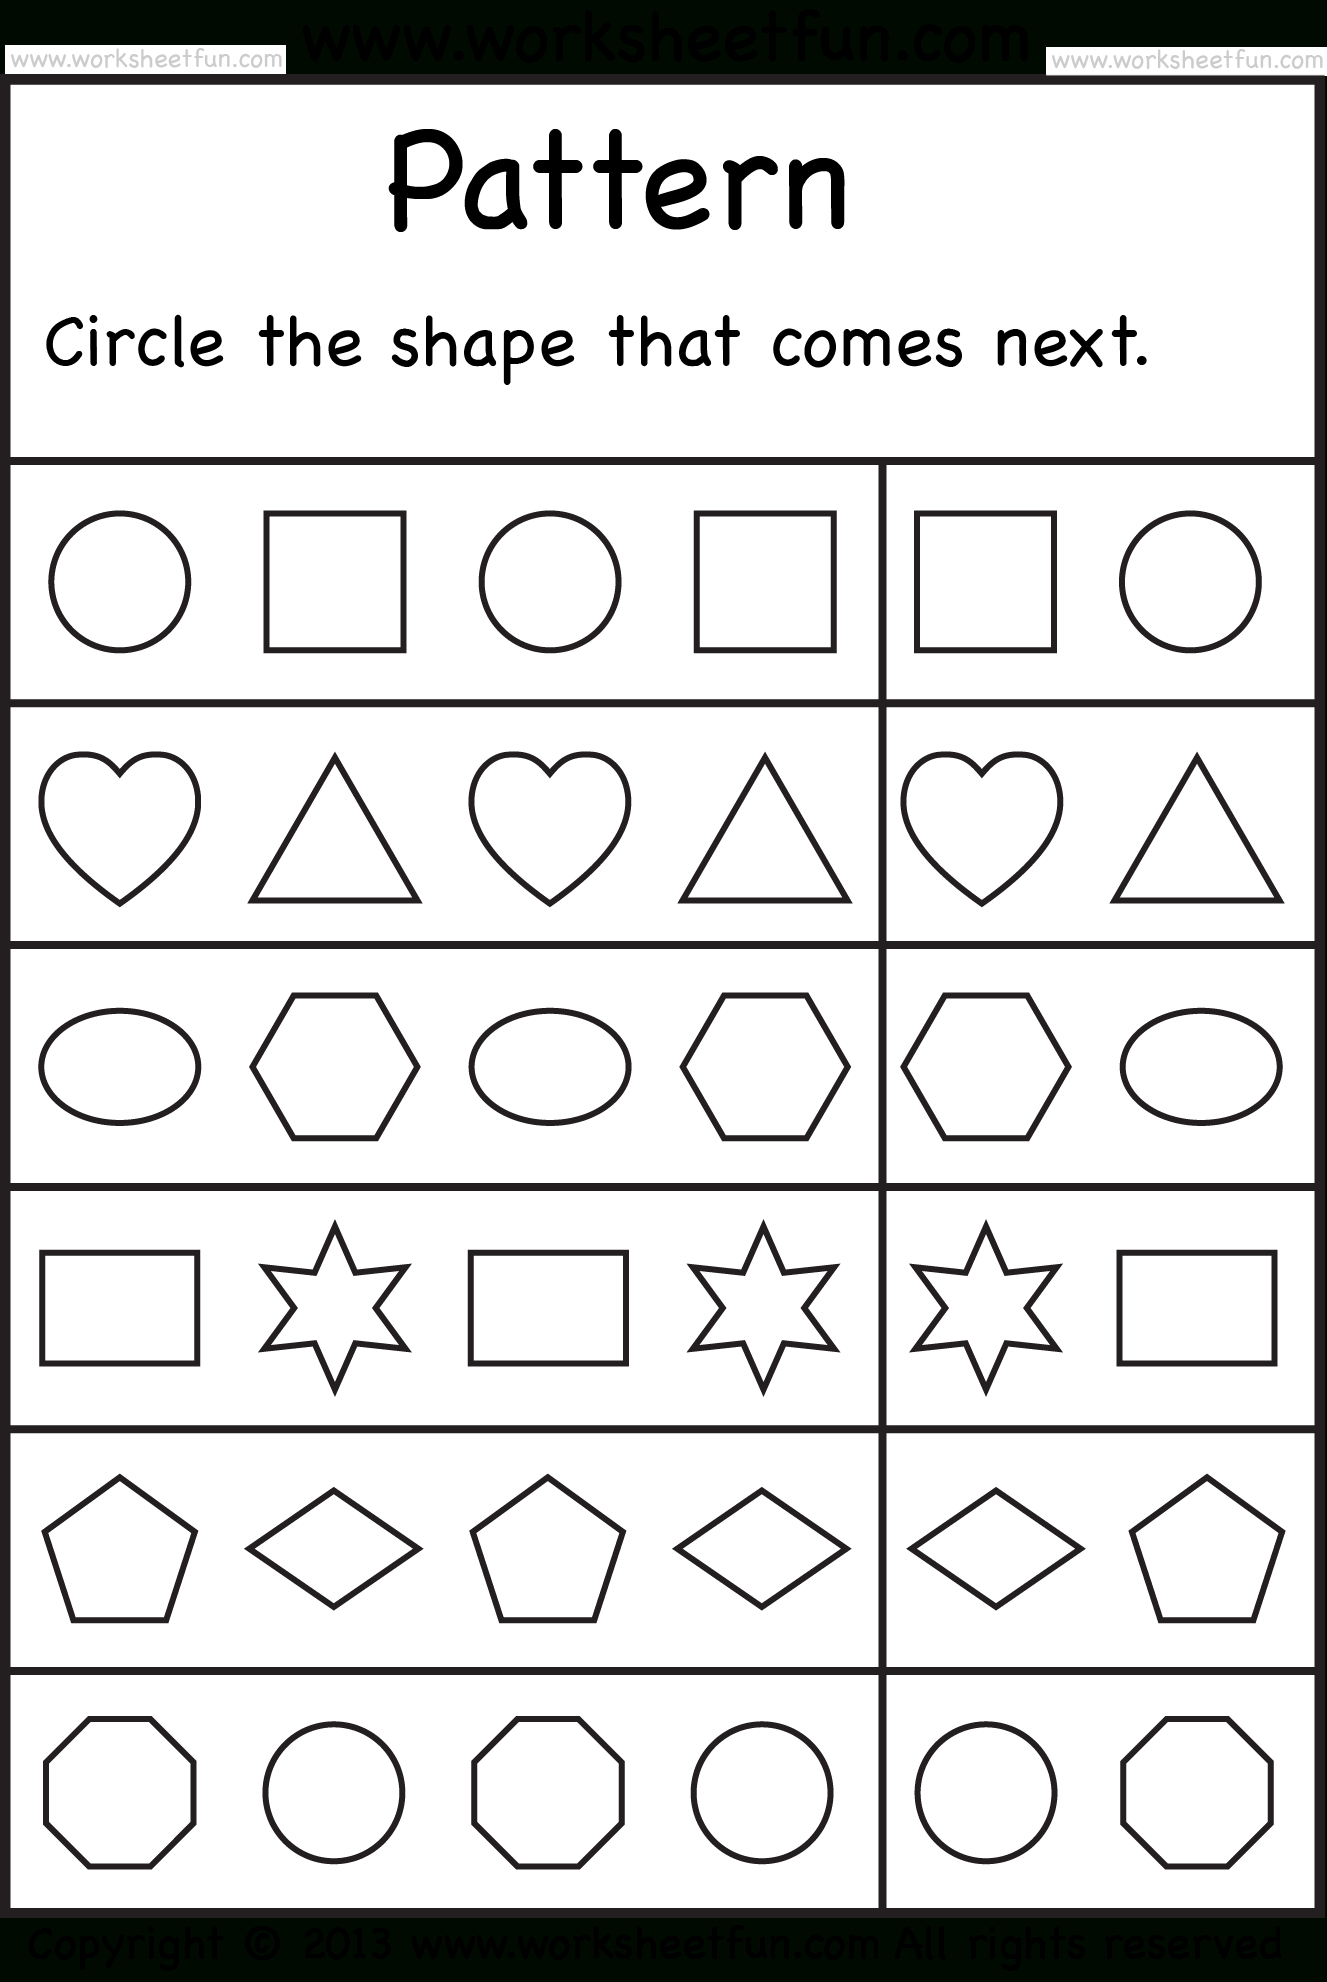 Free Printable Worksheets – Worksheetfun / Free Printable - Free Printable Learning Pages For Toddlers